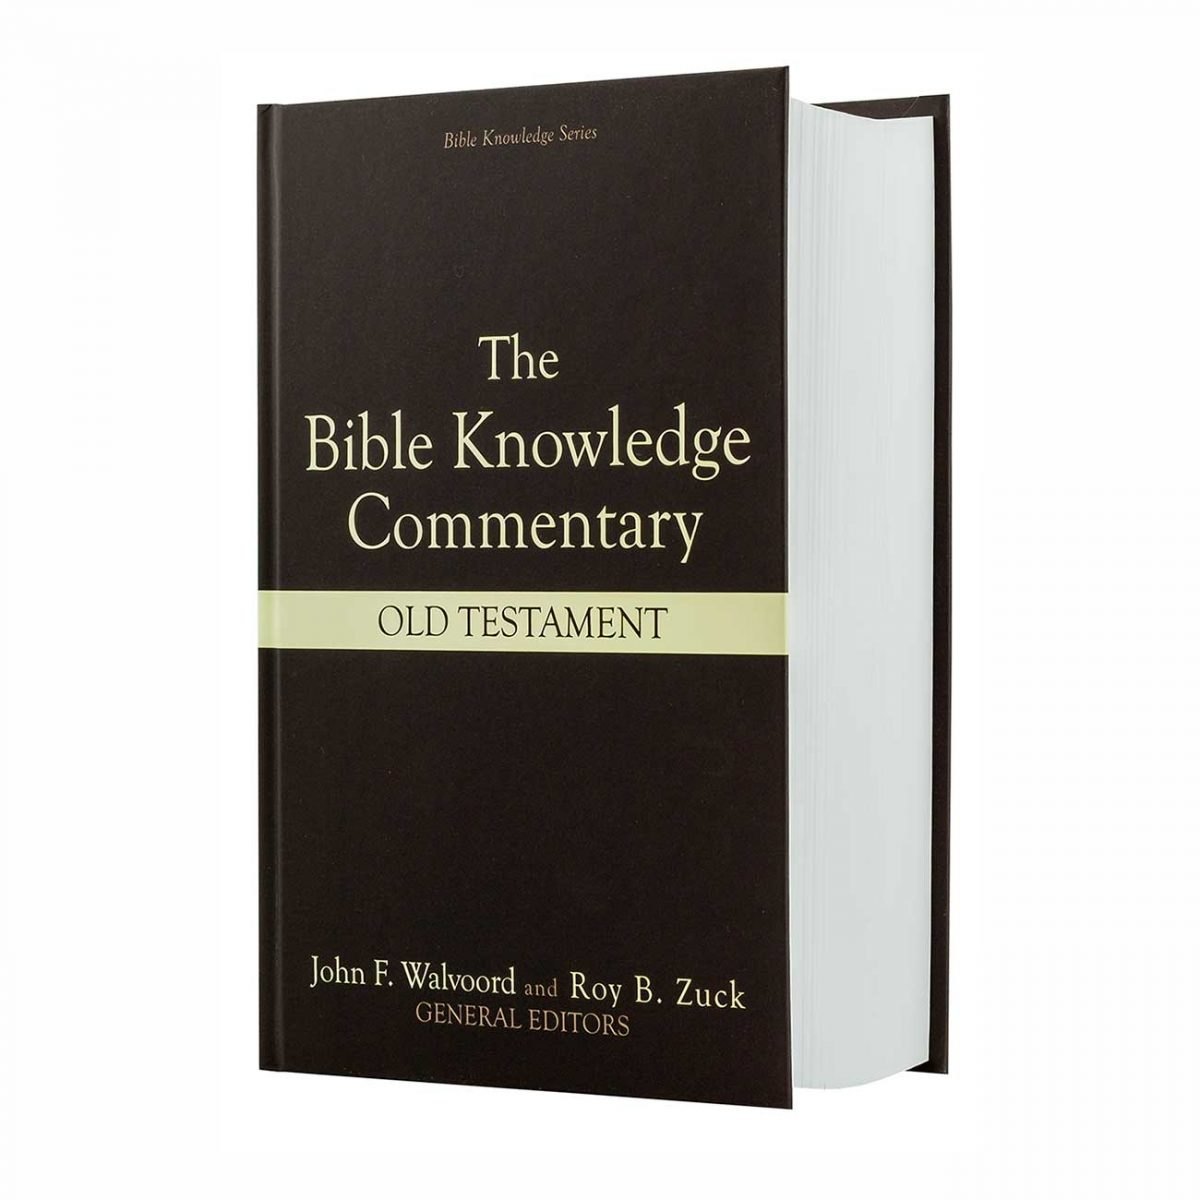 THE BIBLE KNOWLEDGE COMMENTARY: OLD TESTAMENT, hardback book